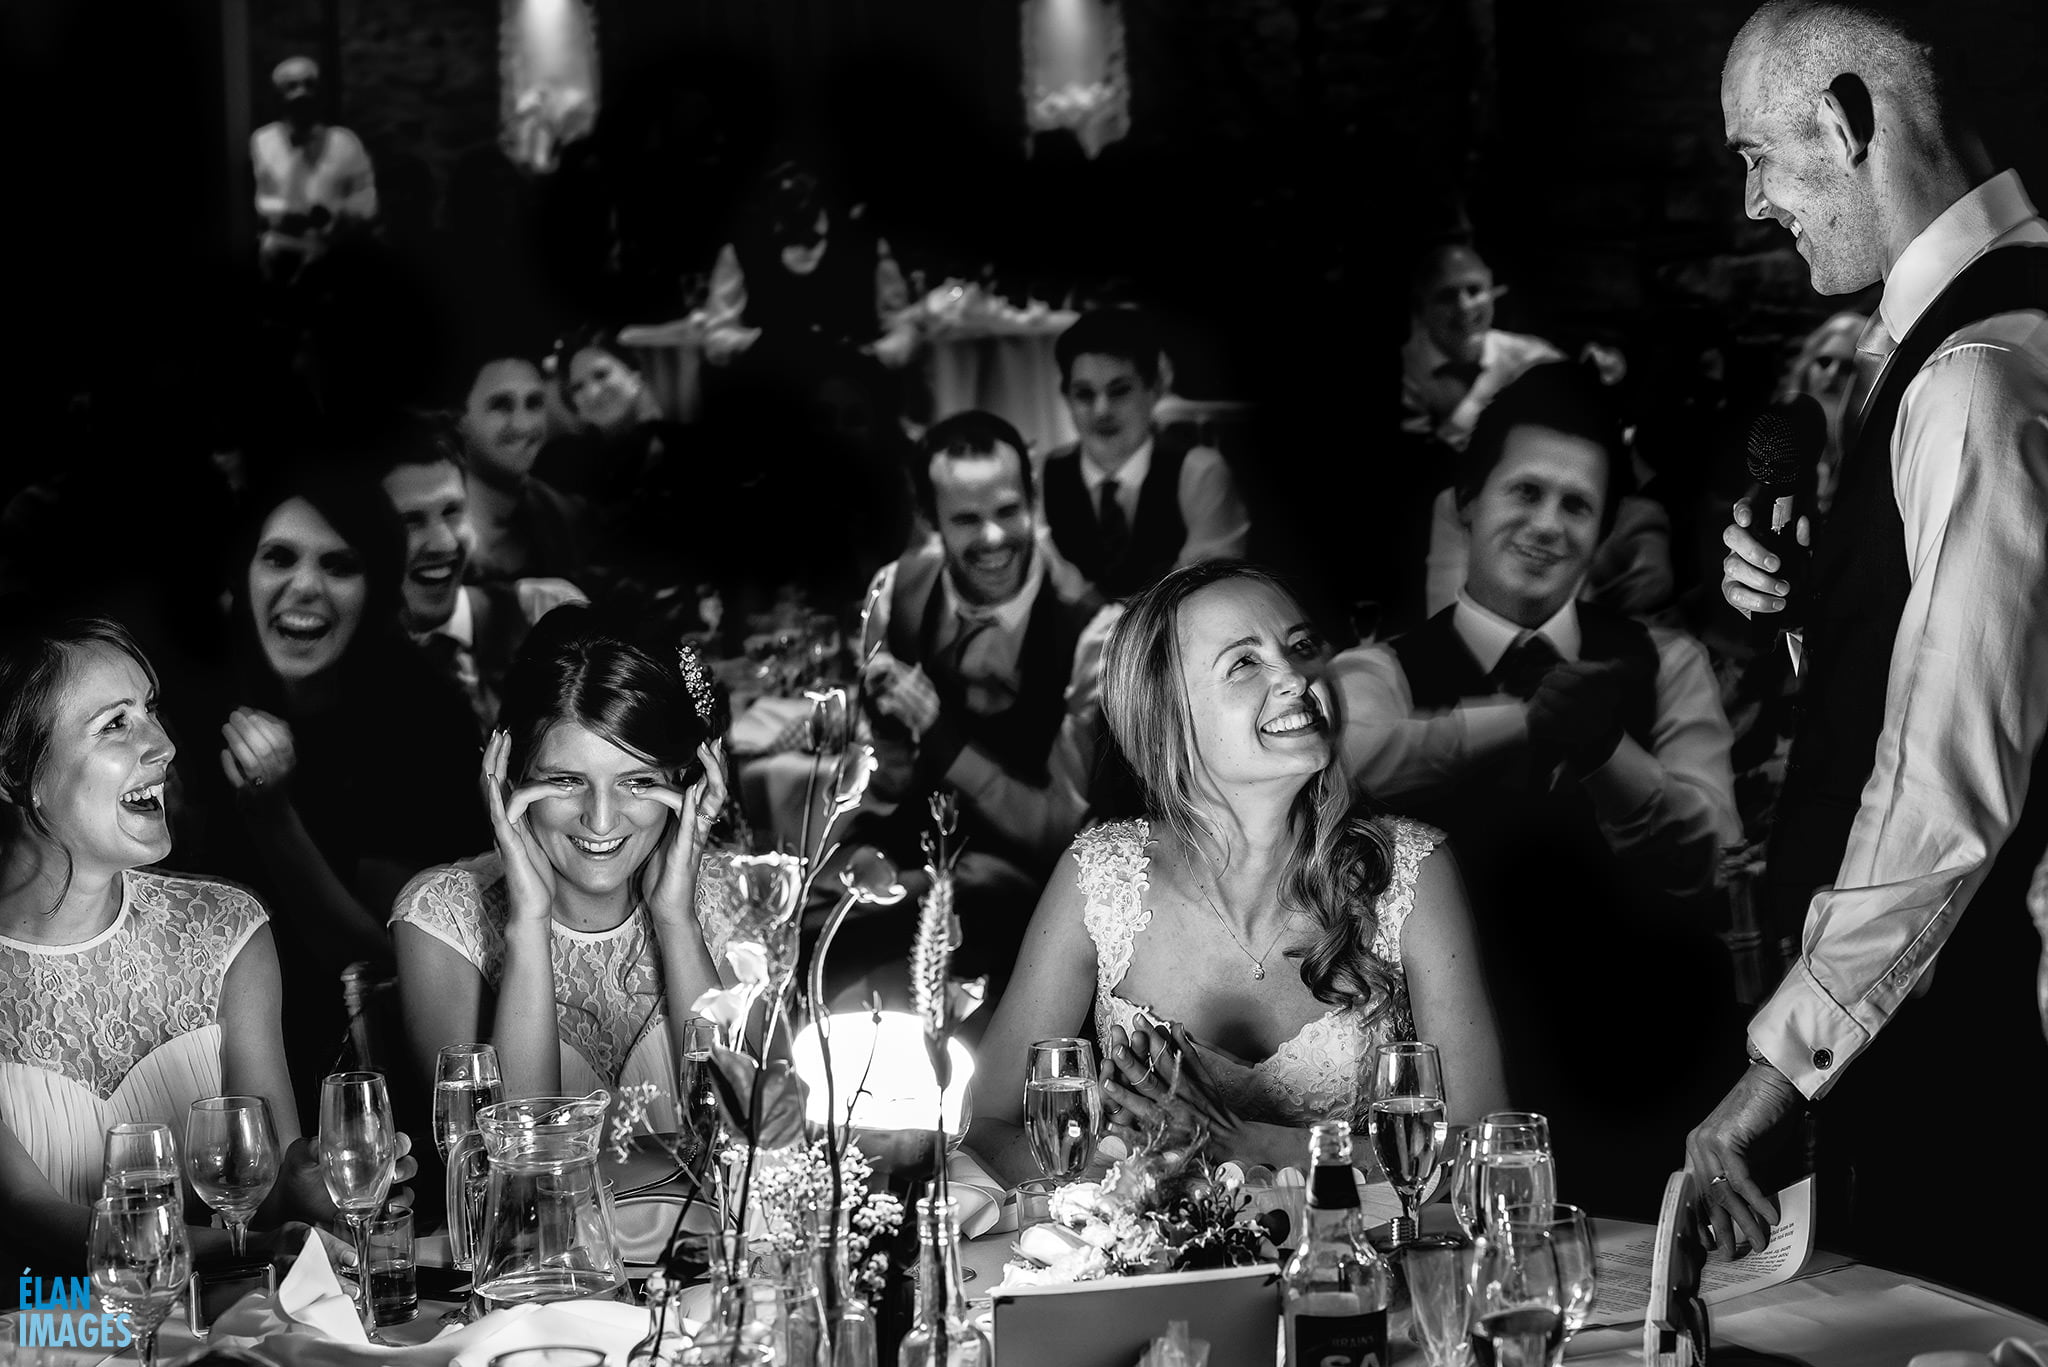 Great Tythe Barn Wedding Reception - Bride and Groom laughing with guests